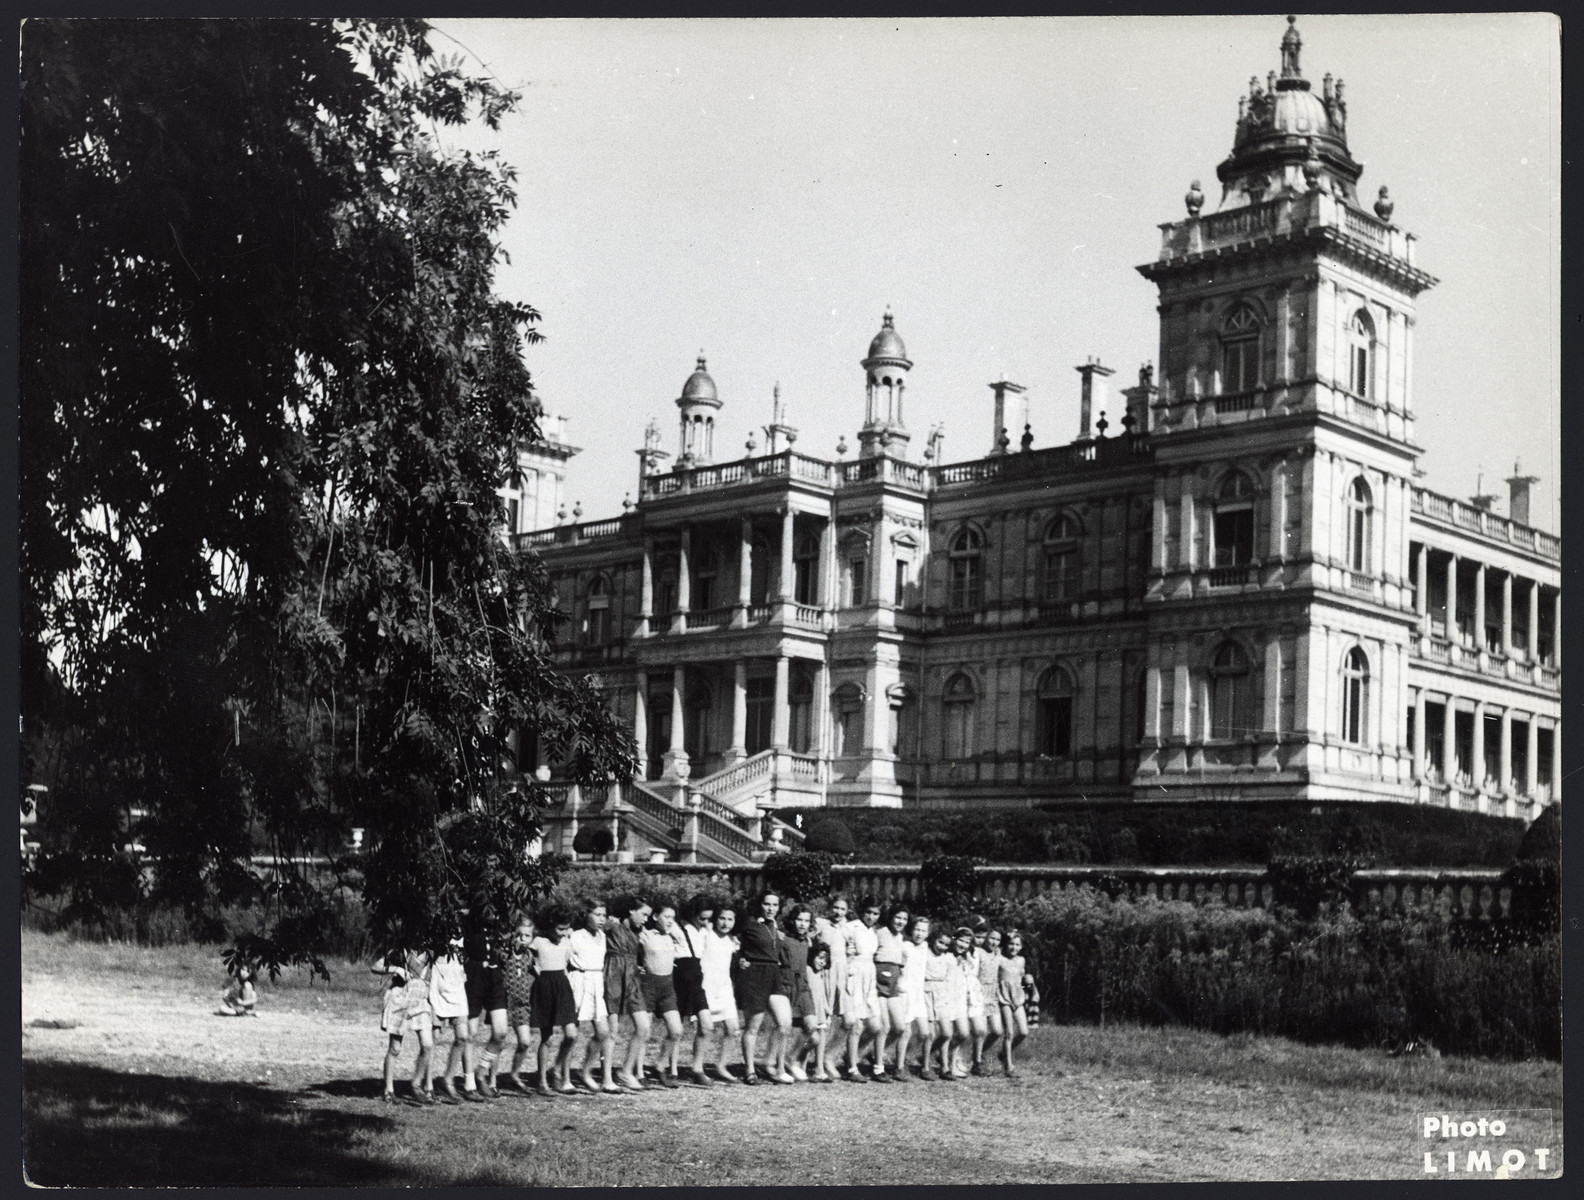 """Girls walk in a row on the grounds of the Rothschild castle.  The original caption reads """"Vacation at the Rothschild castle."""""""